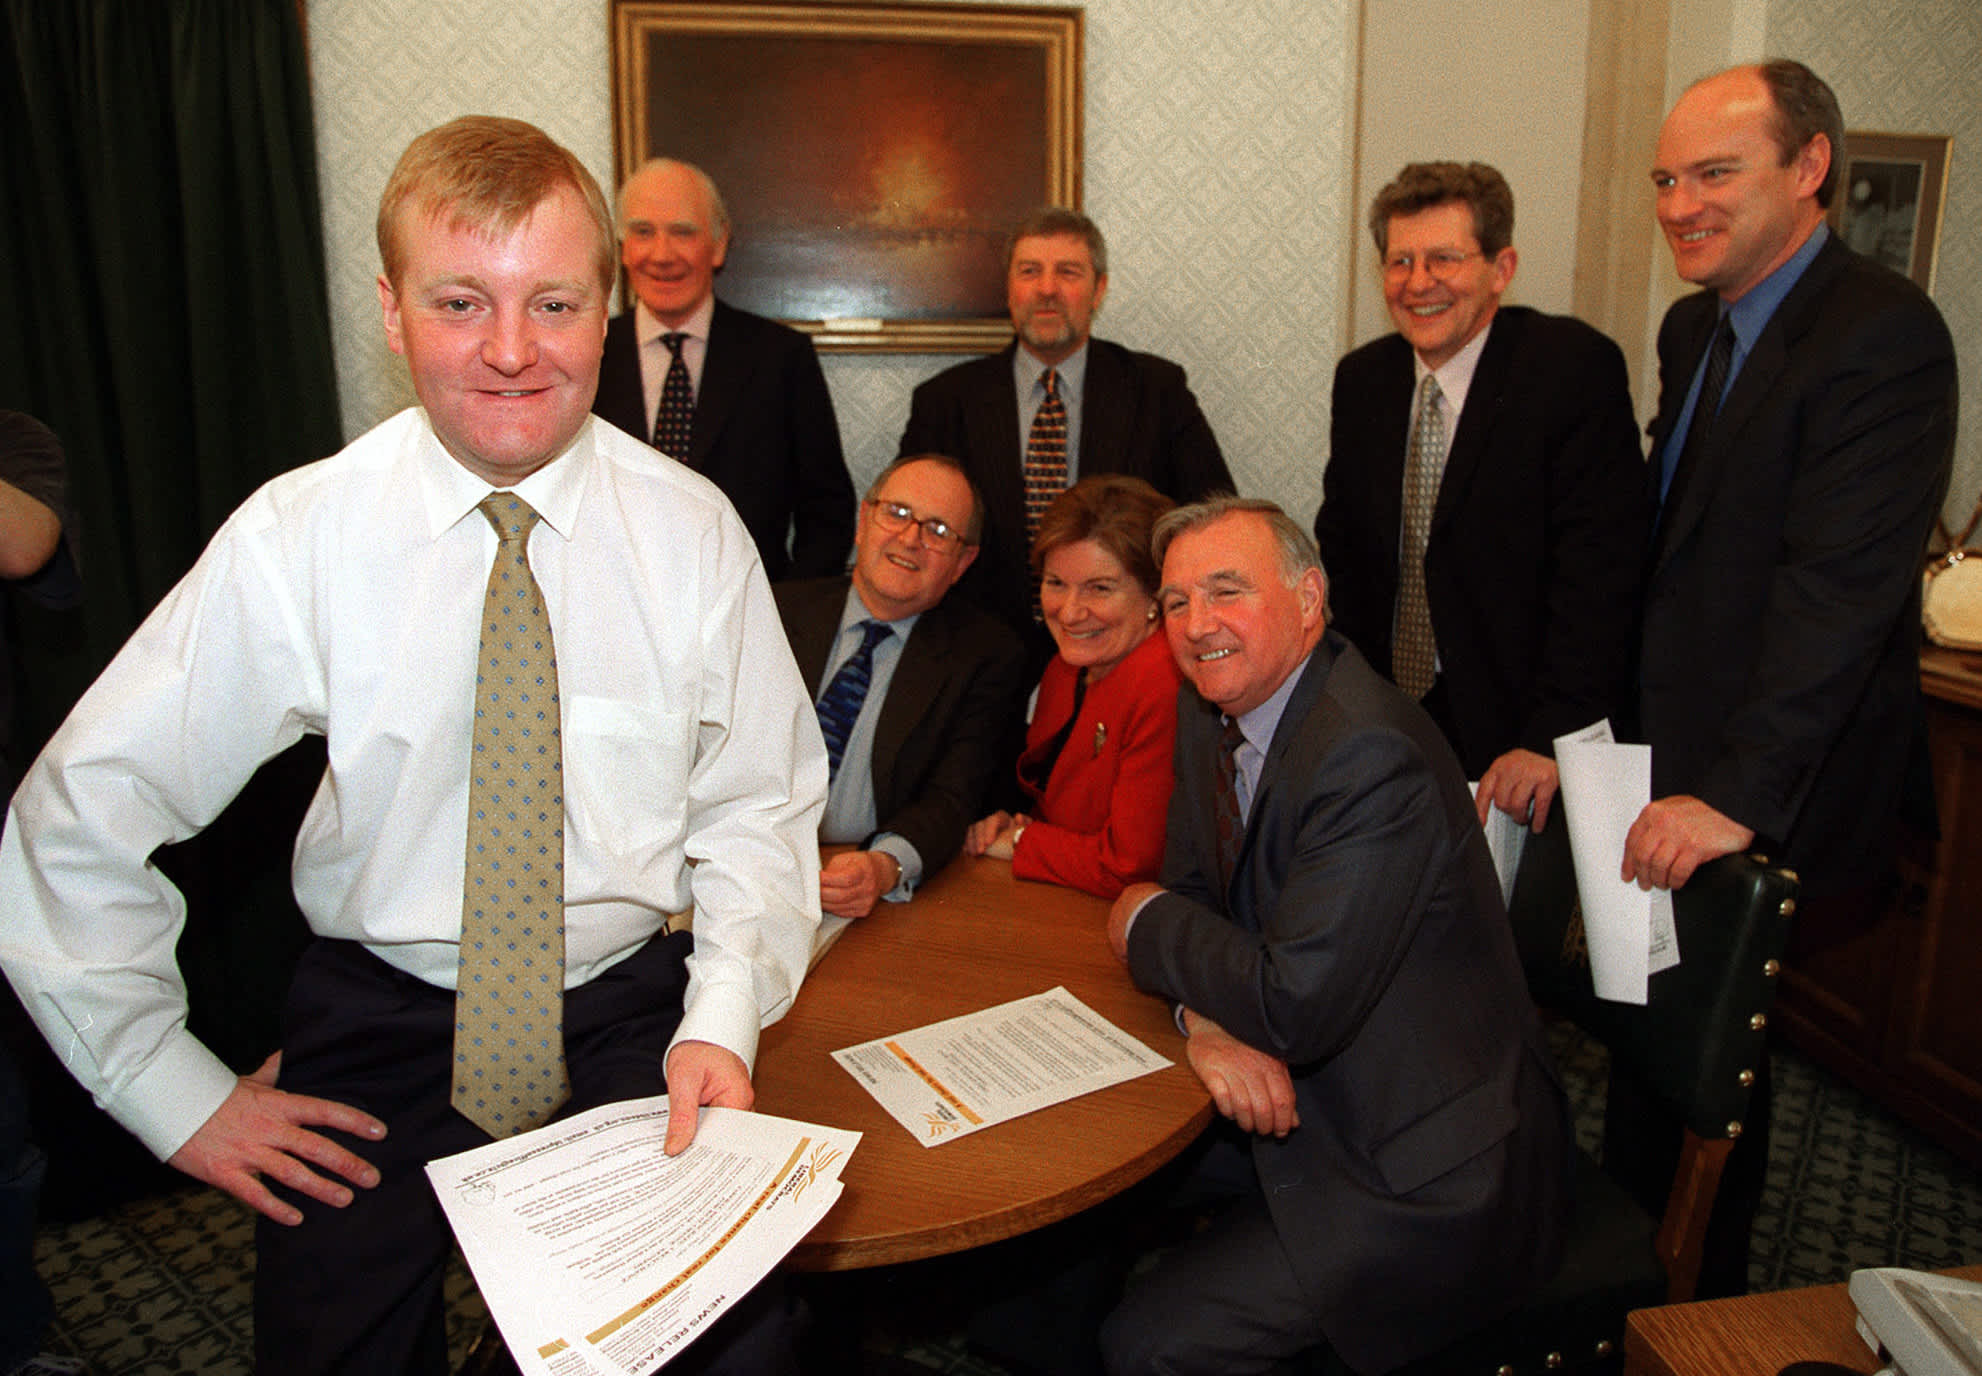 Leader of the British Liberal Democrats Charles Kennedy (L) poses with members of his electoral team including Baroness Jenny Tonge in his office inside the Houses of Parliament May 8, 2001. (Reuters)